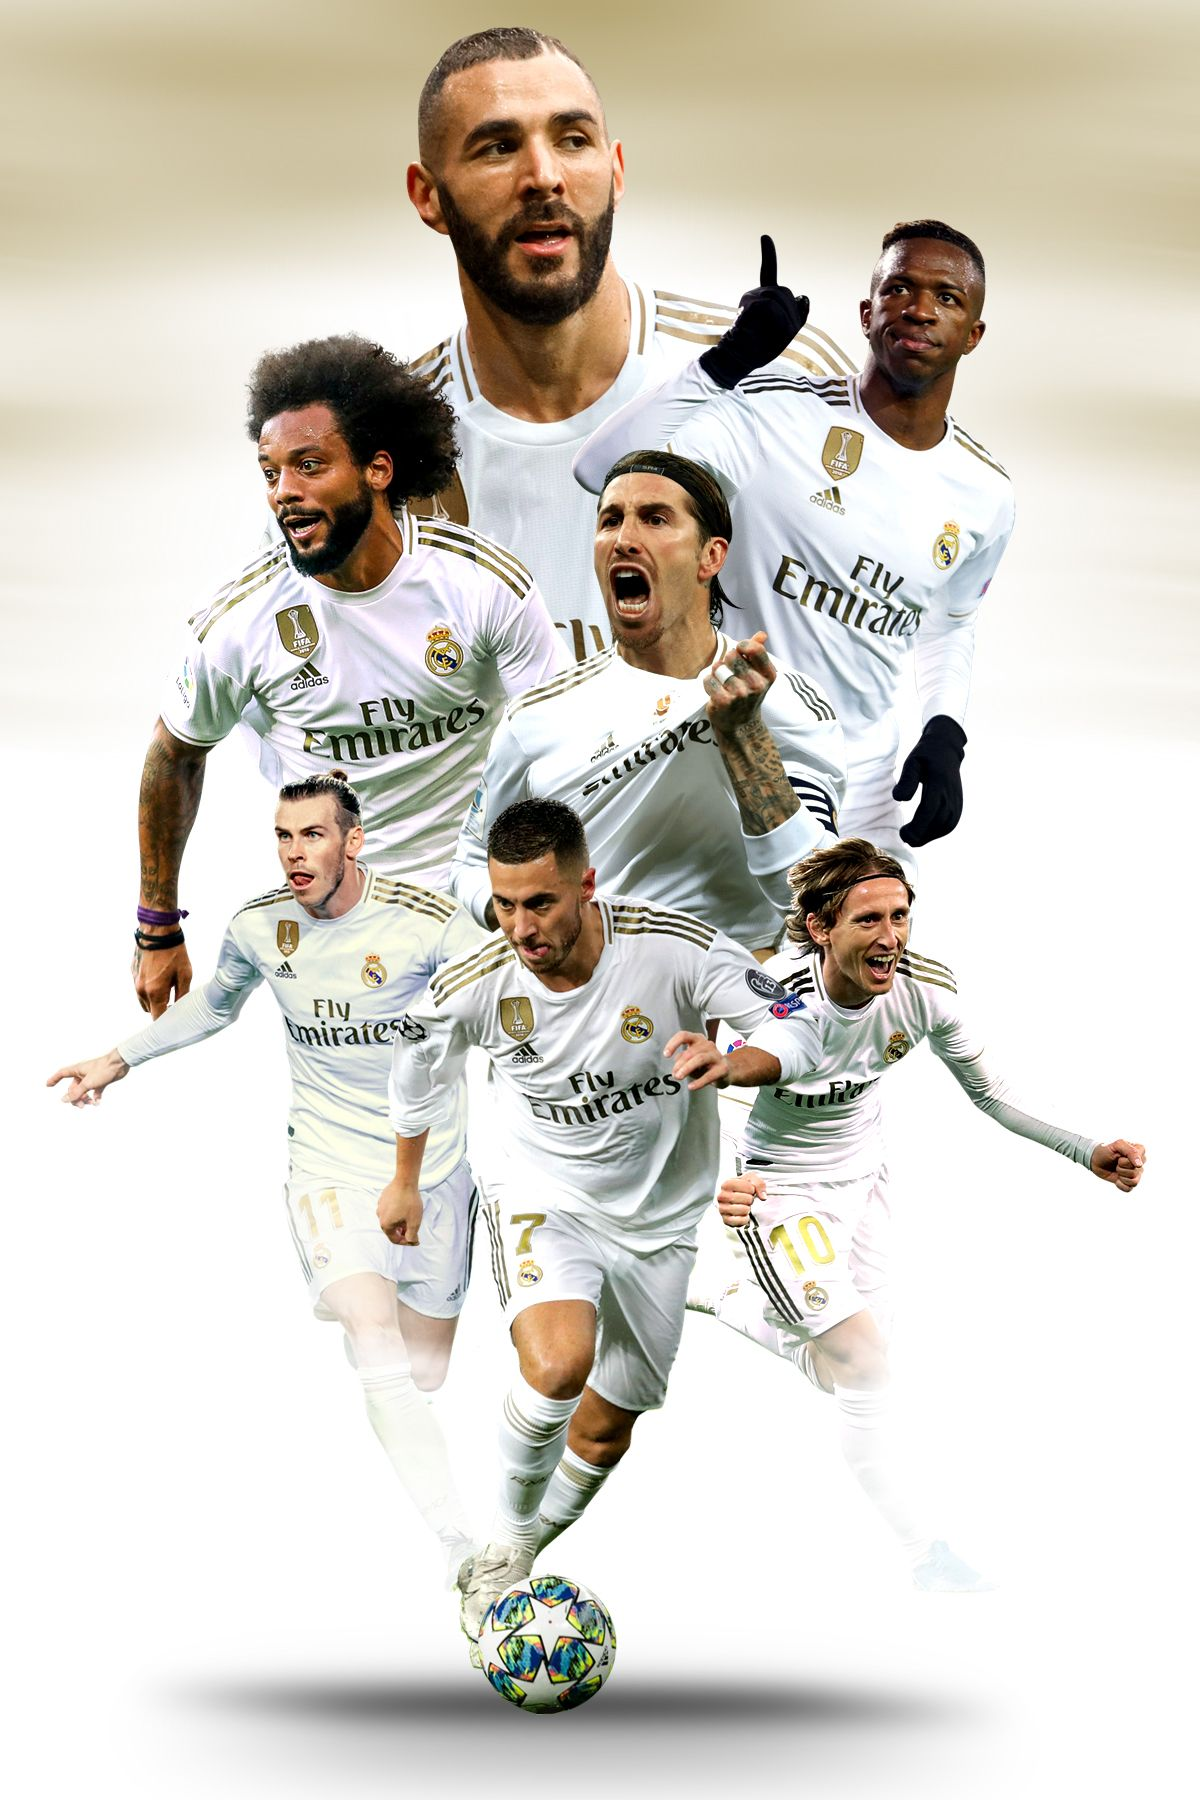 Real Madrid Poster In 2020 Real Madrid Wallpapers Real Madrid Team Madrid Wallpaper